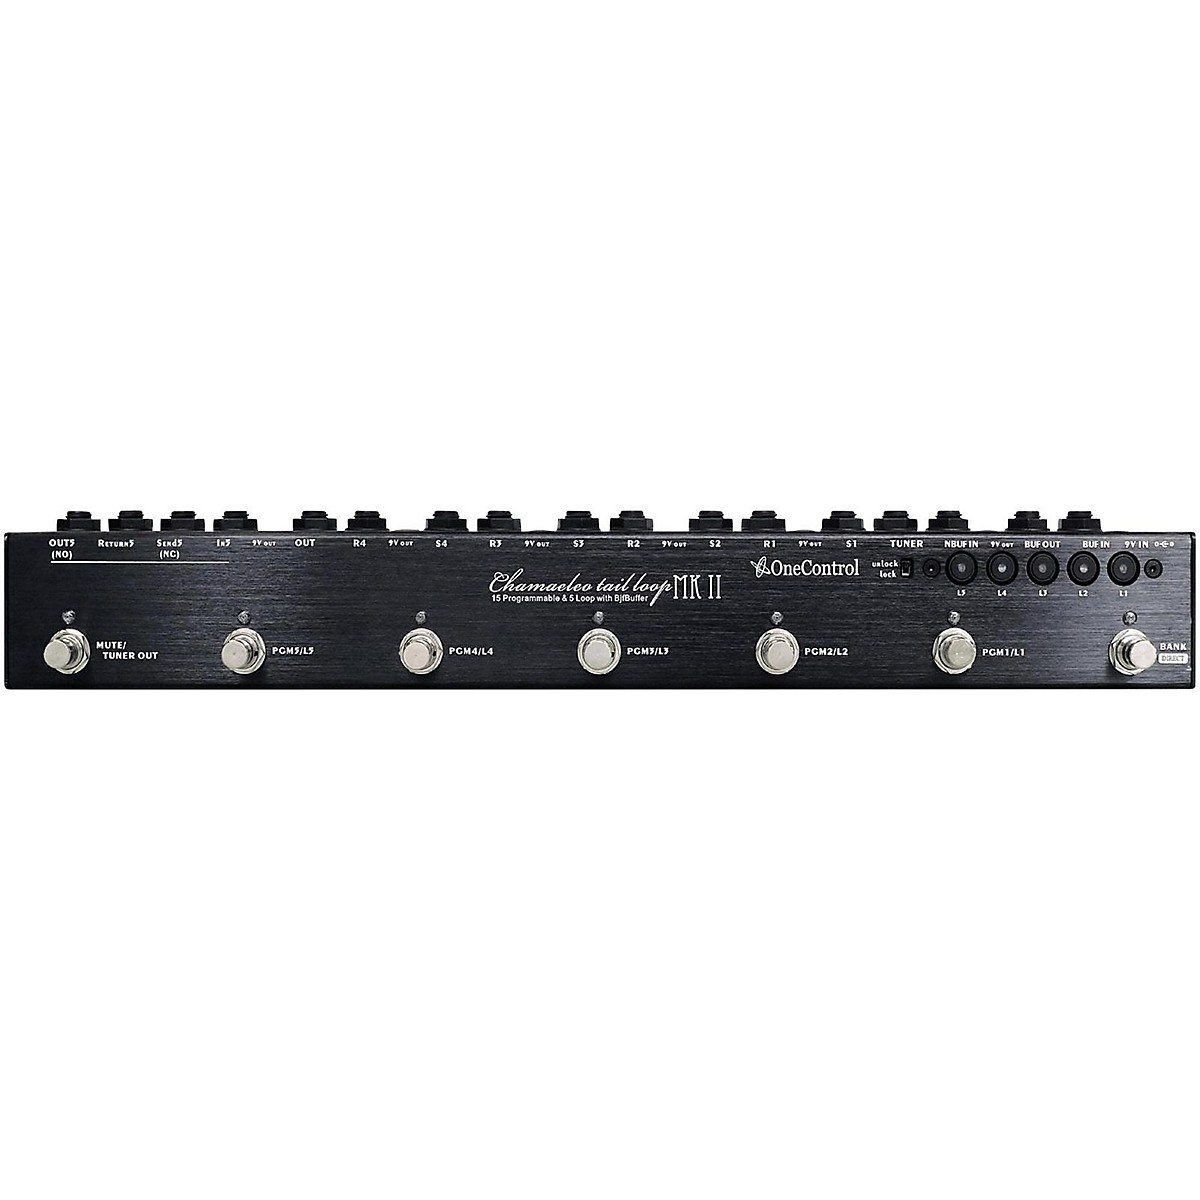 One Control Chamaeleo Tail Loop MKII 5-Loop Programmable Switcher